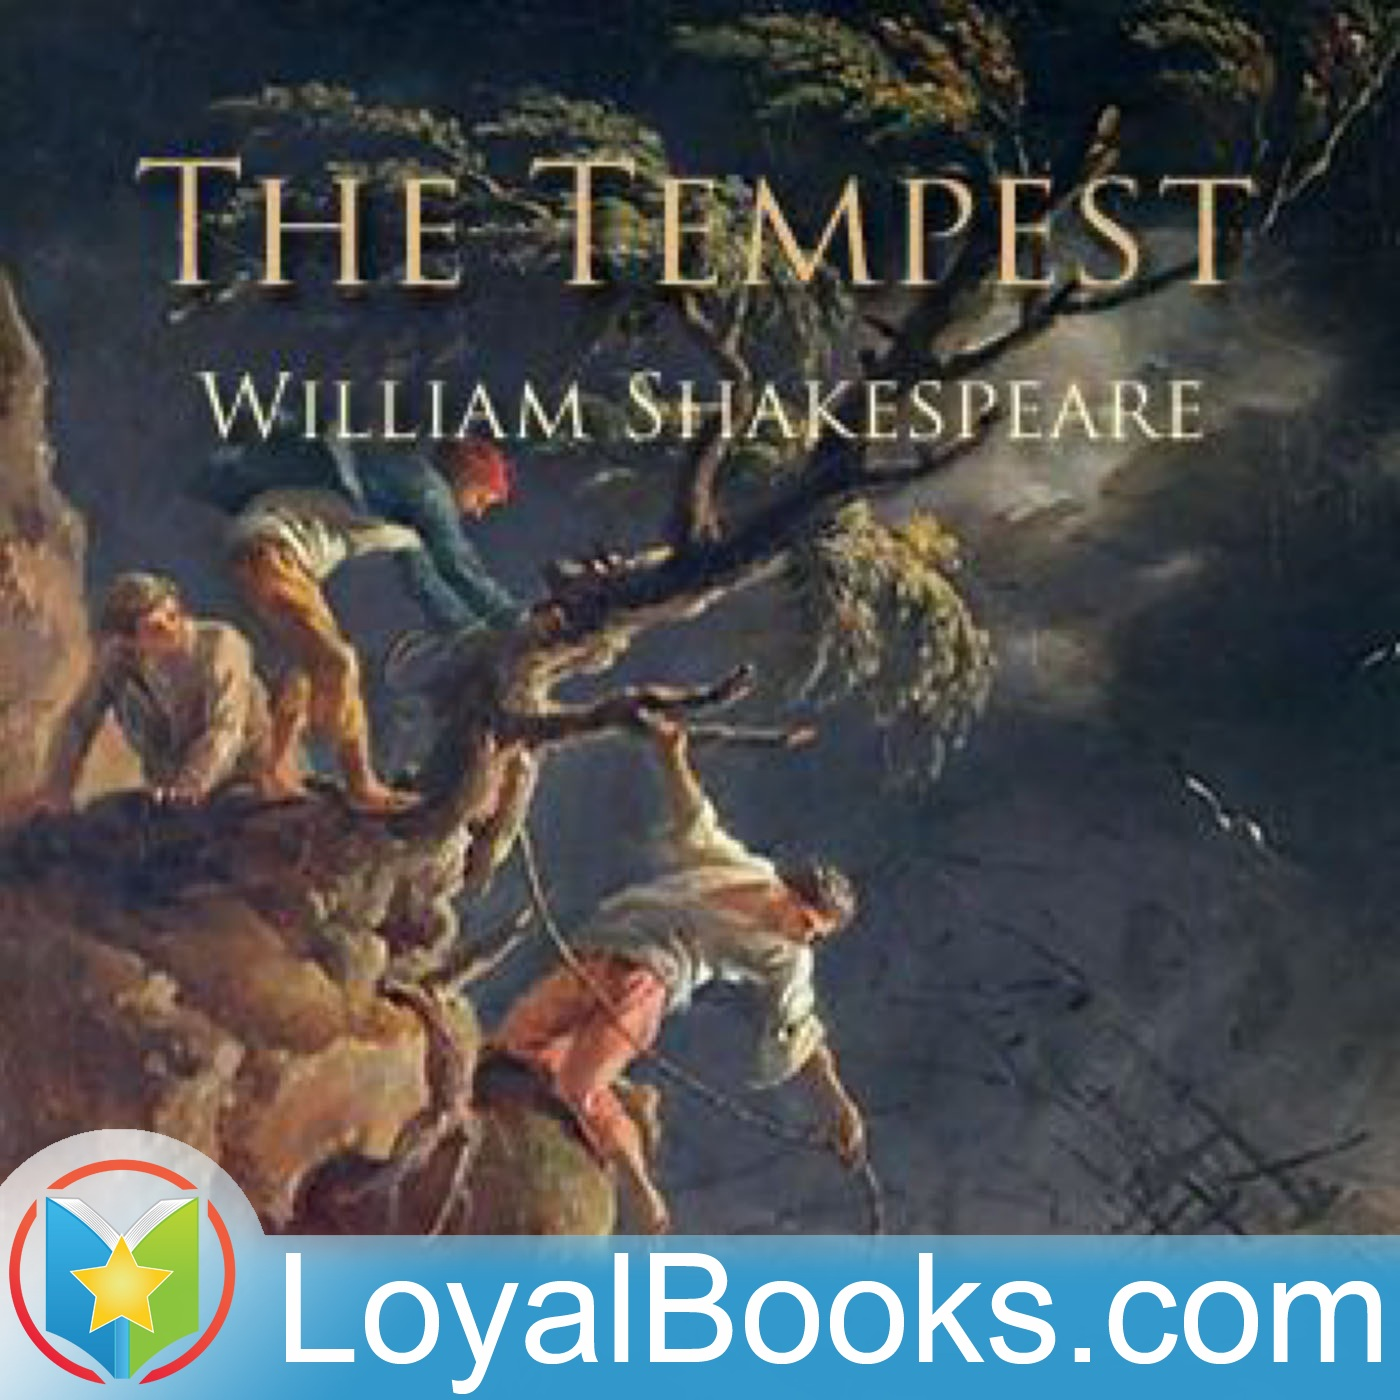 a literary analysis of a play within a play in the tempest Unlike most editing & proofreading services, we edit for everything: grammar, spelling, punctuation, idea flow, sentence structure, & more get started now.